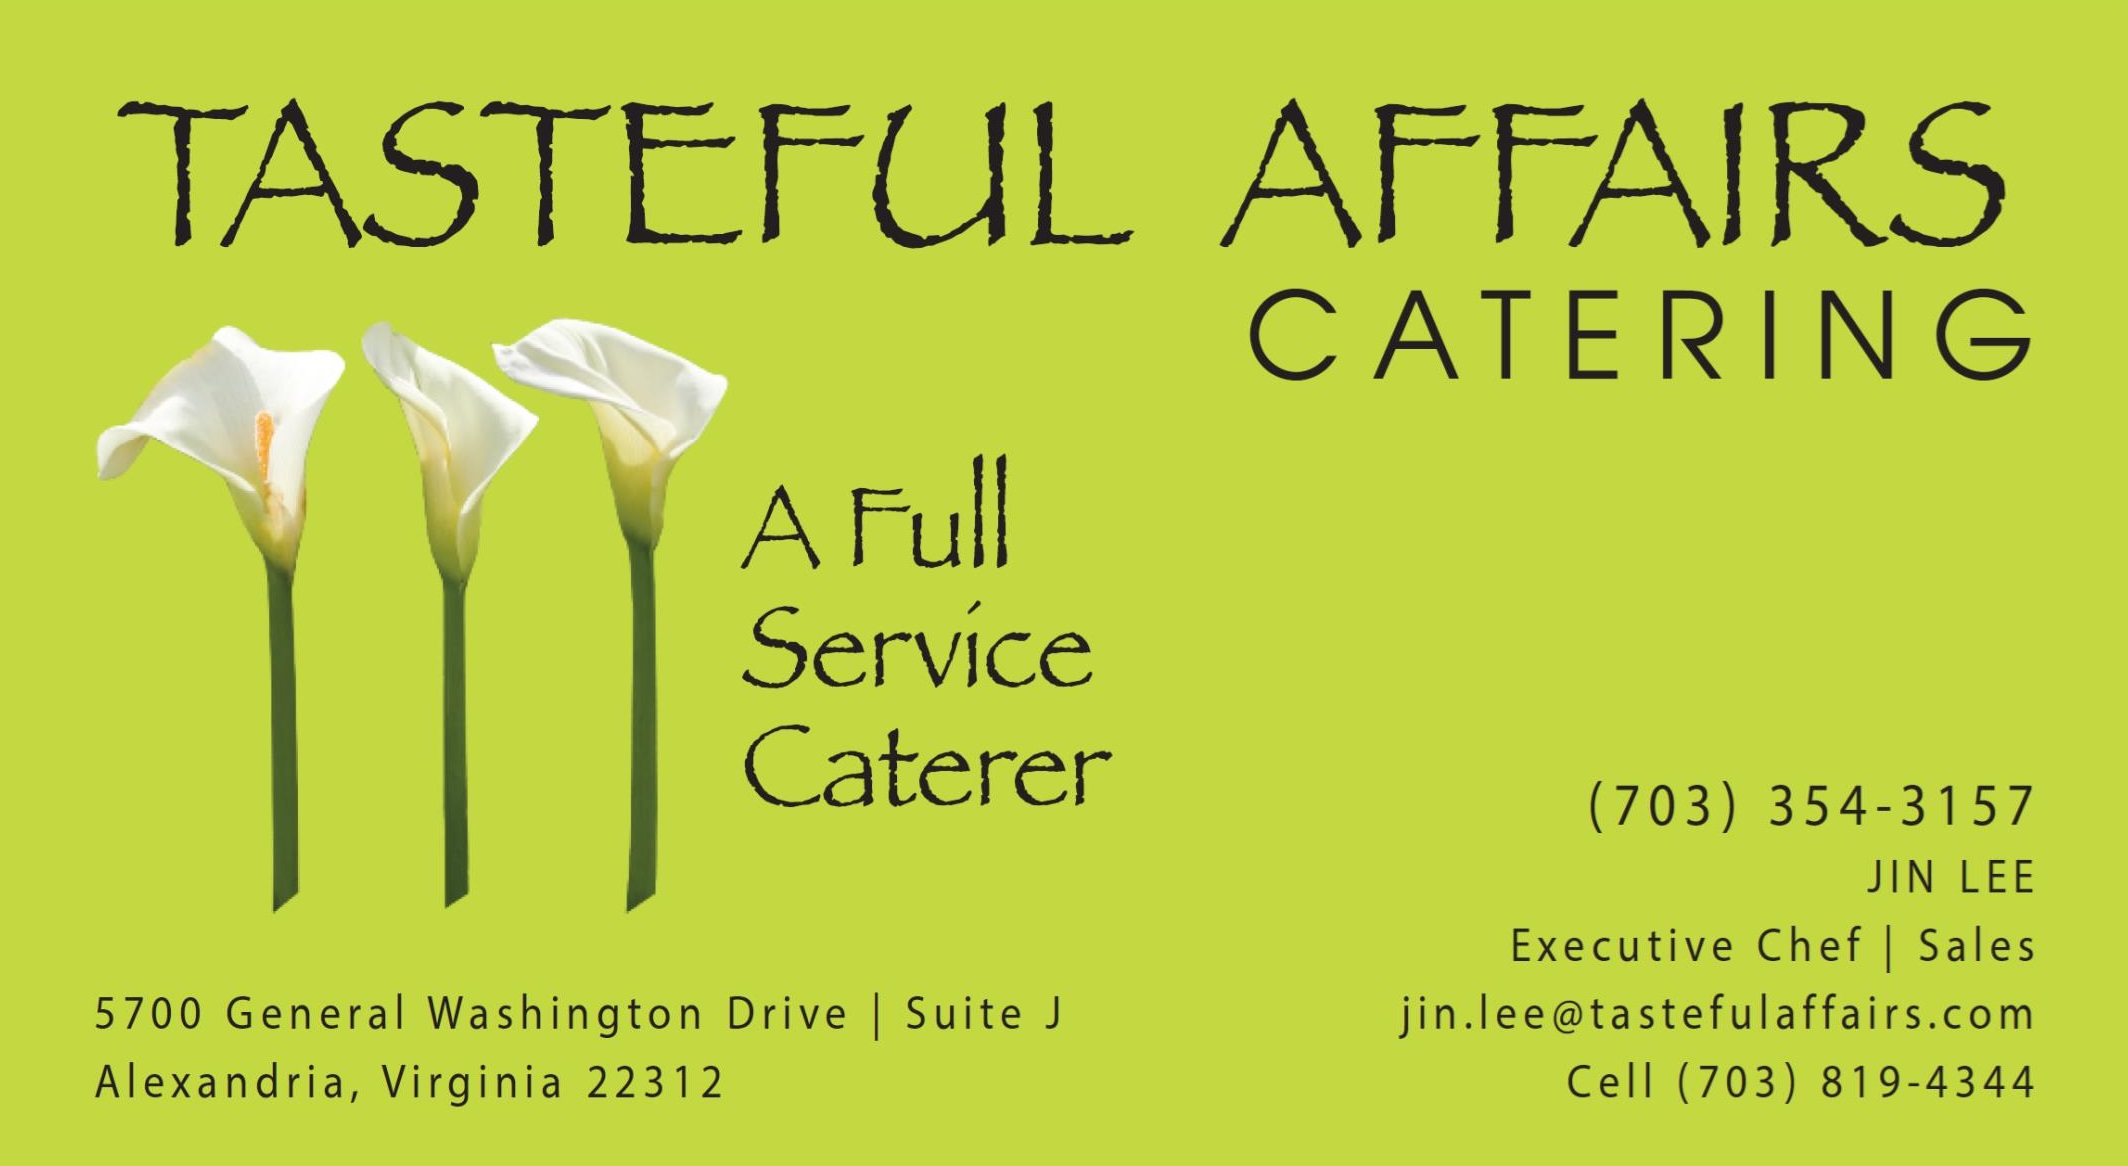 Tasteful Affairs at Wedding Blueprint: A wedding open house with DC's top wedding professionals. Feb 22 in Alexandria, VA